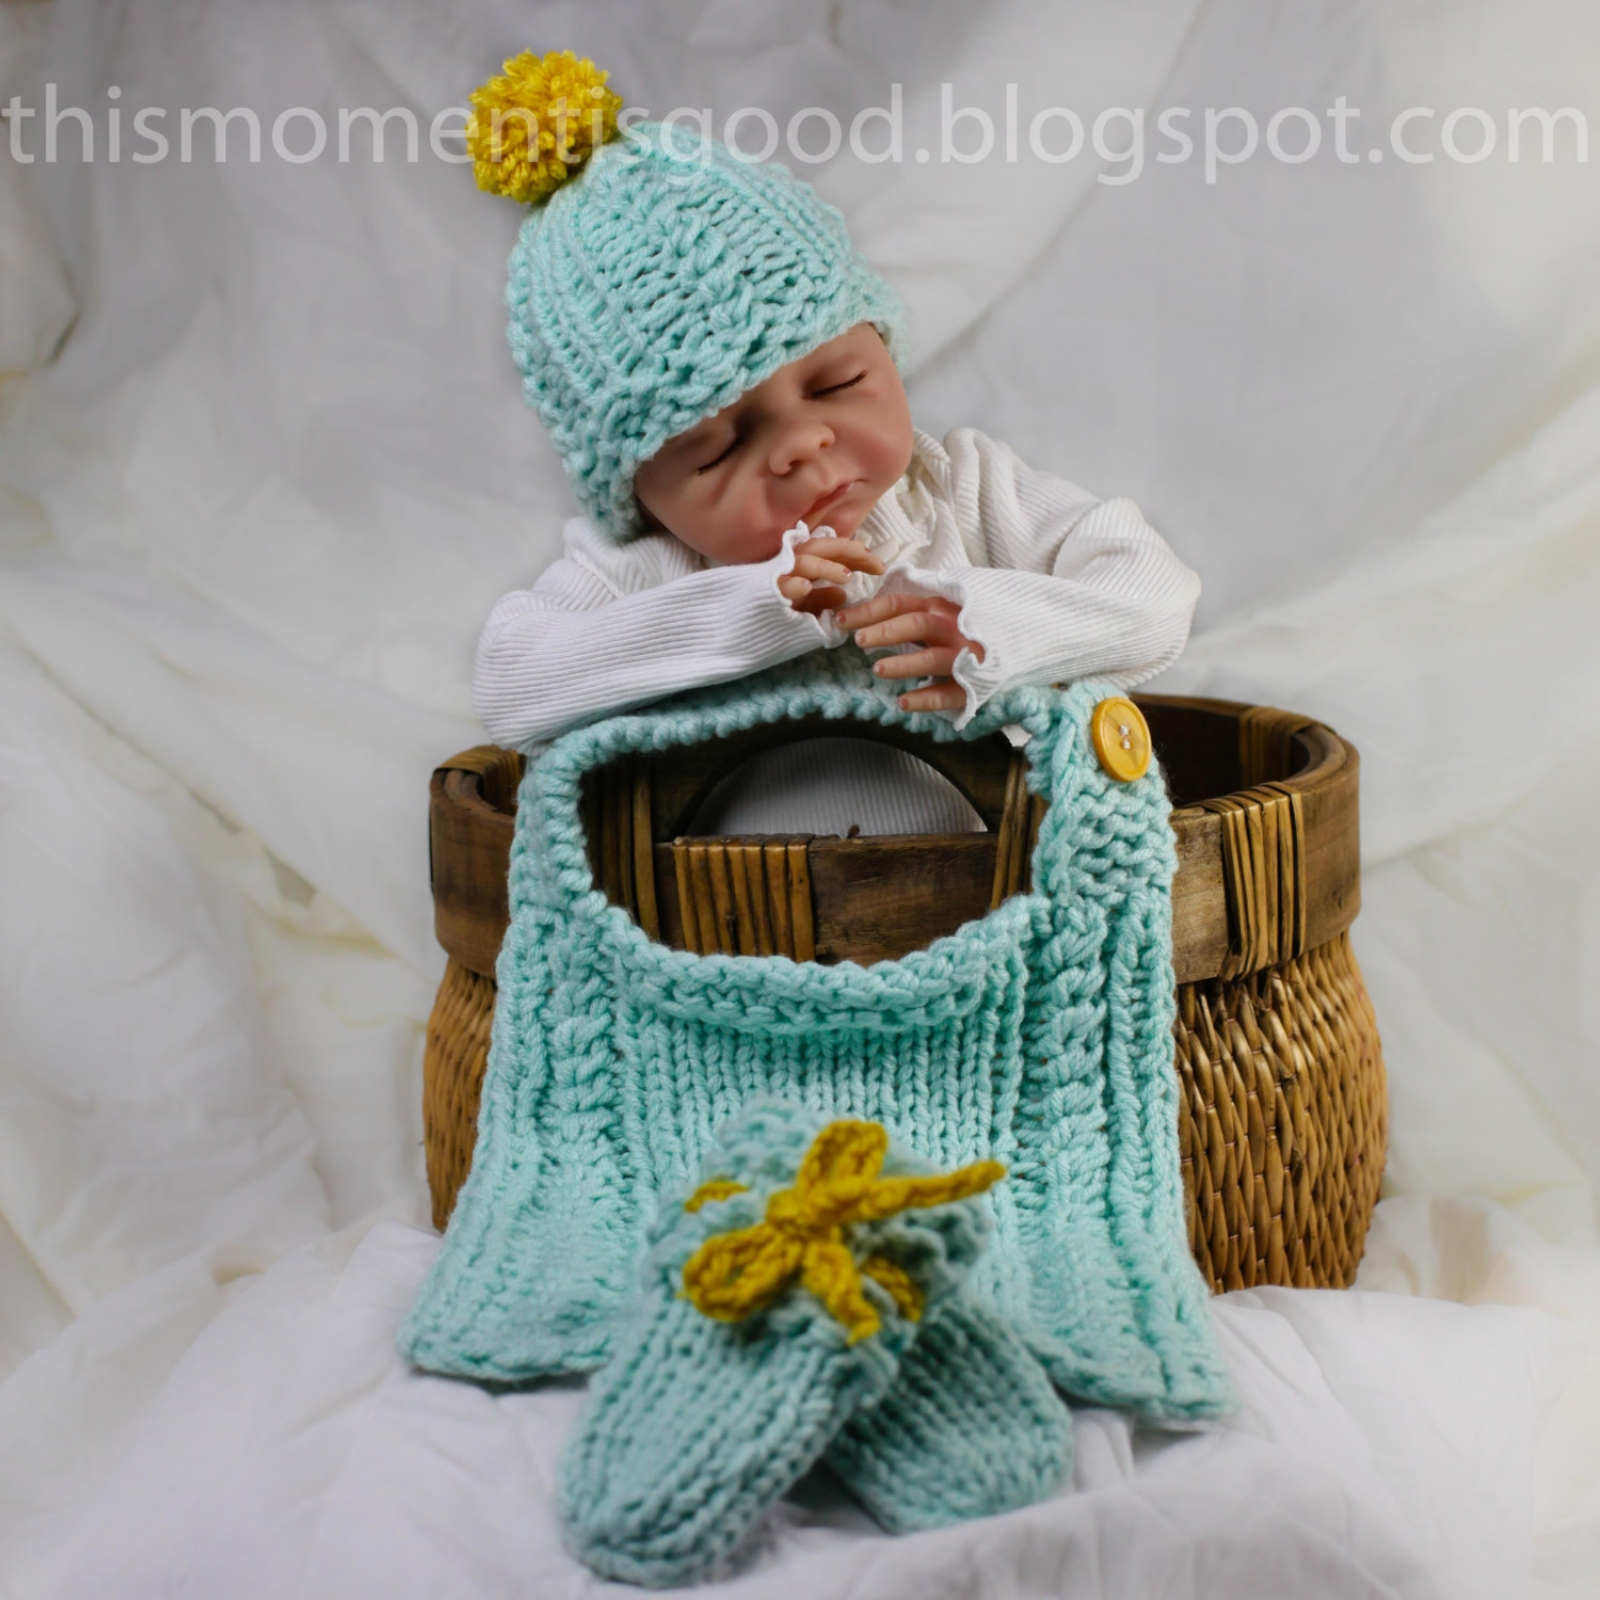 Loom Knit Baby Layette Set, Loom Knitting Patterns | This Moment is Good